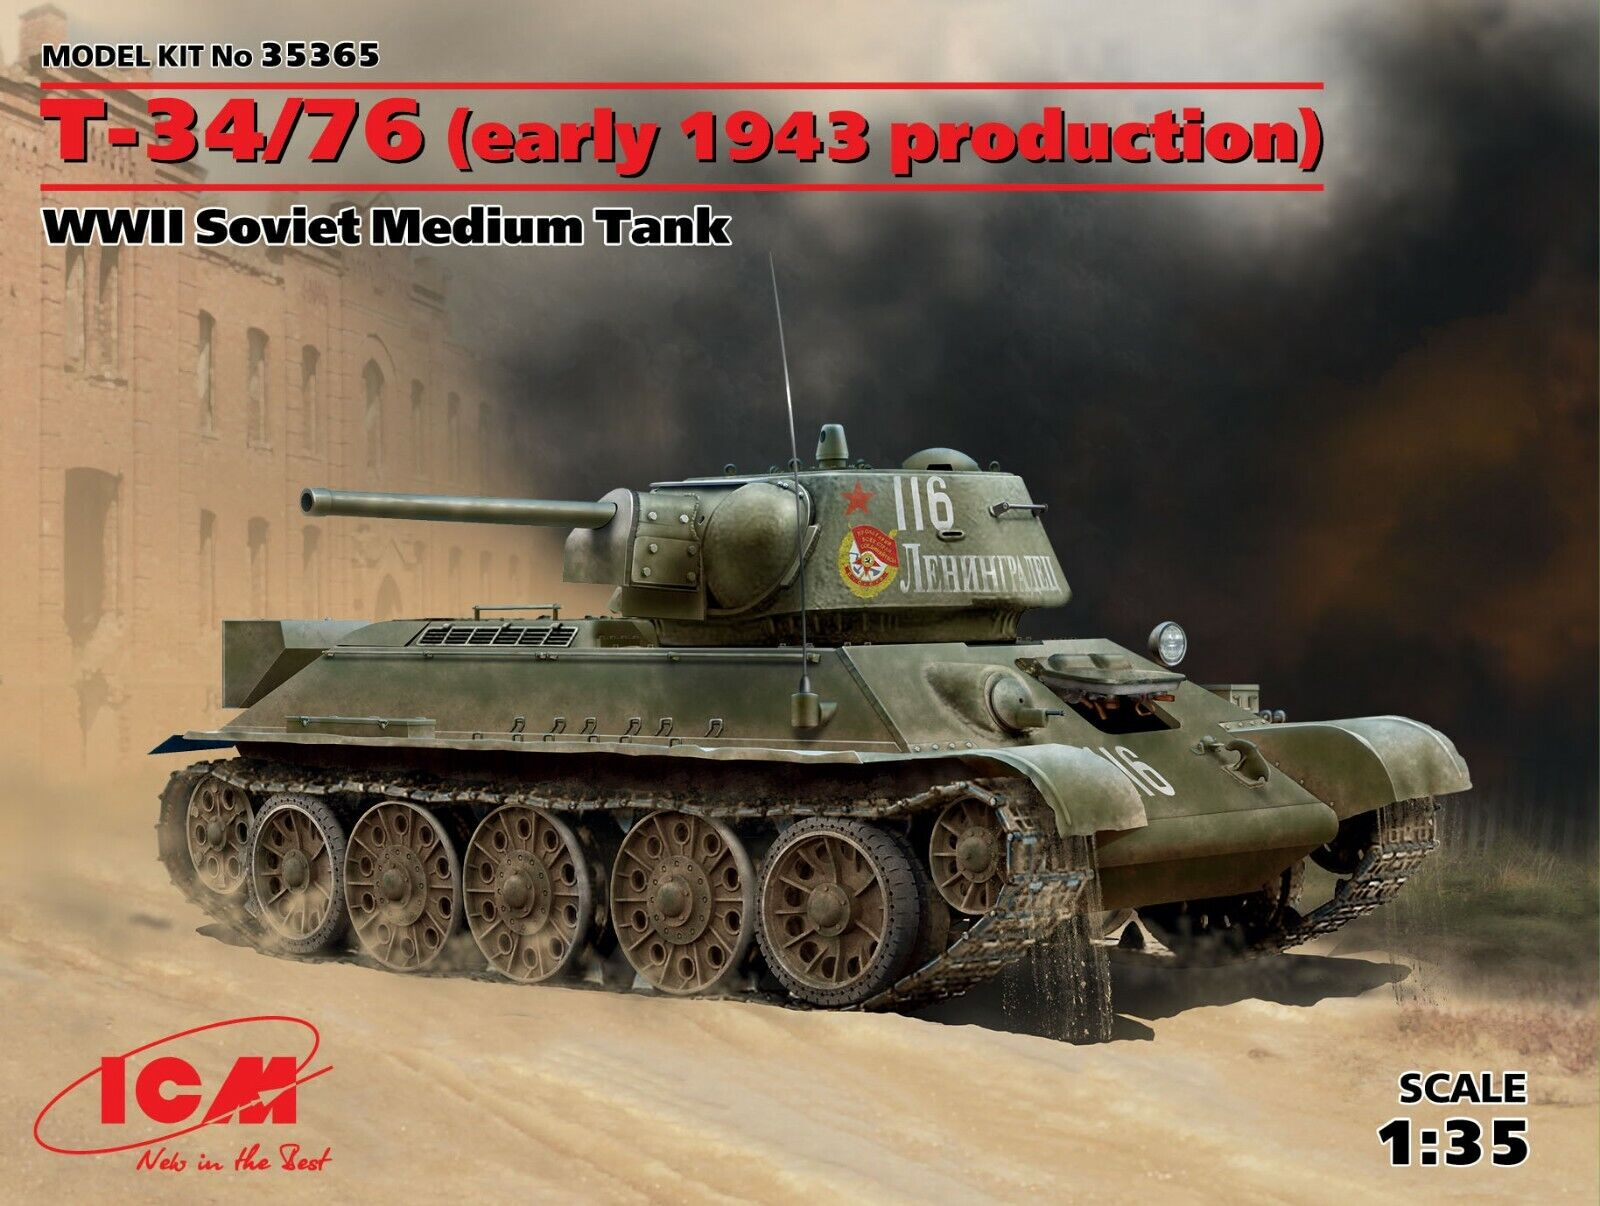 ICM 35365 T-34 76 (early 1943 production) WWII, 1 35 Plastic model 189 mm